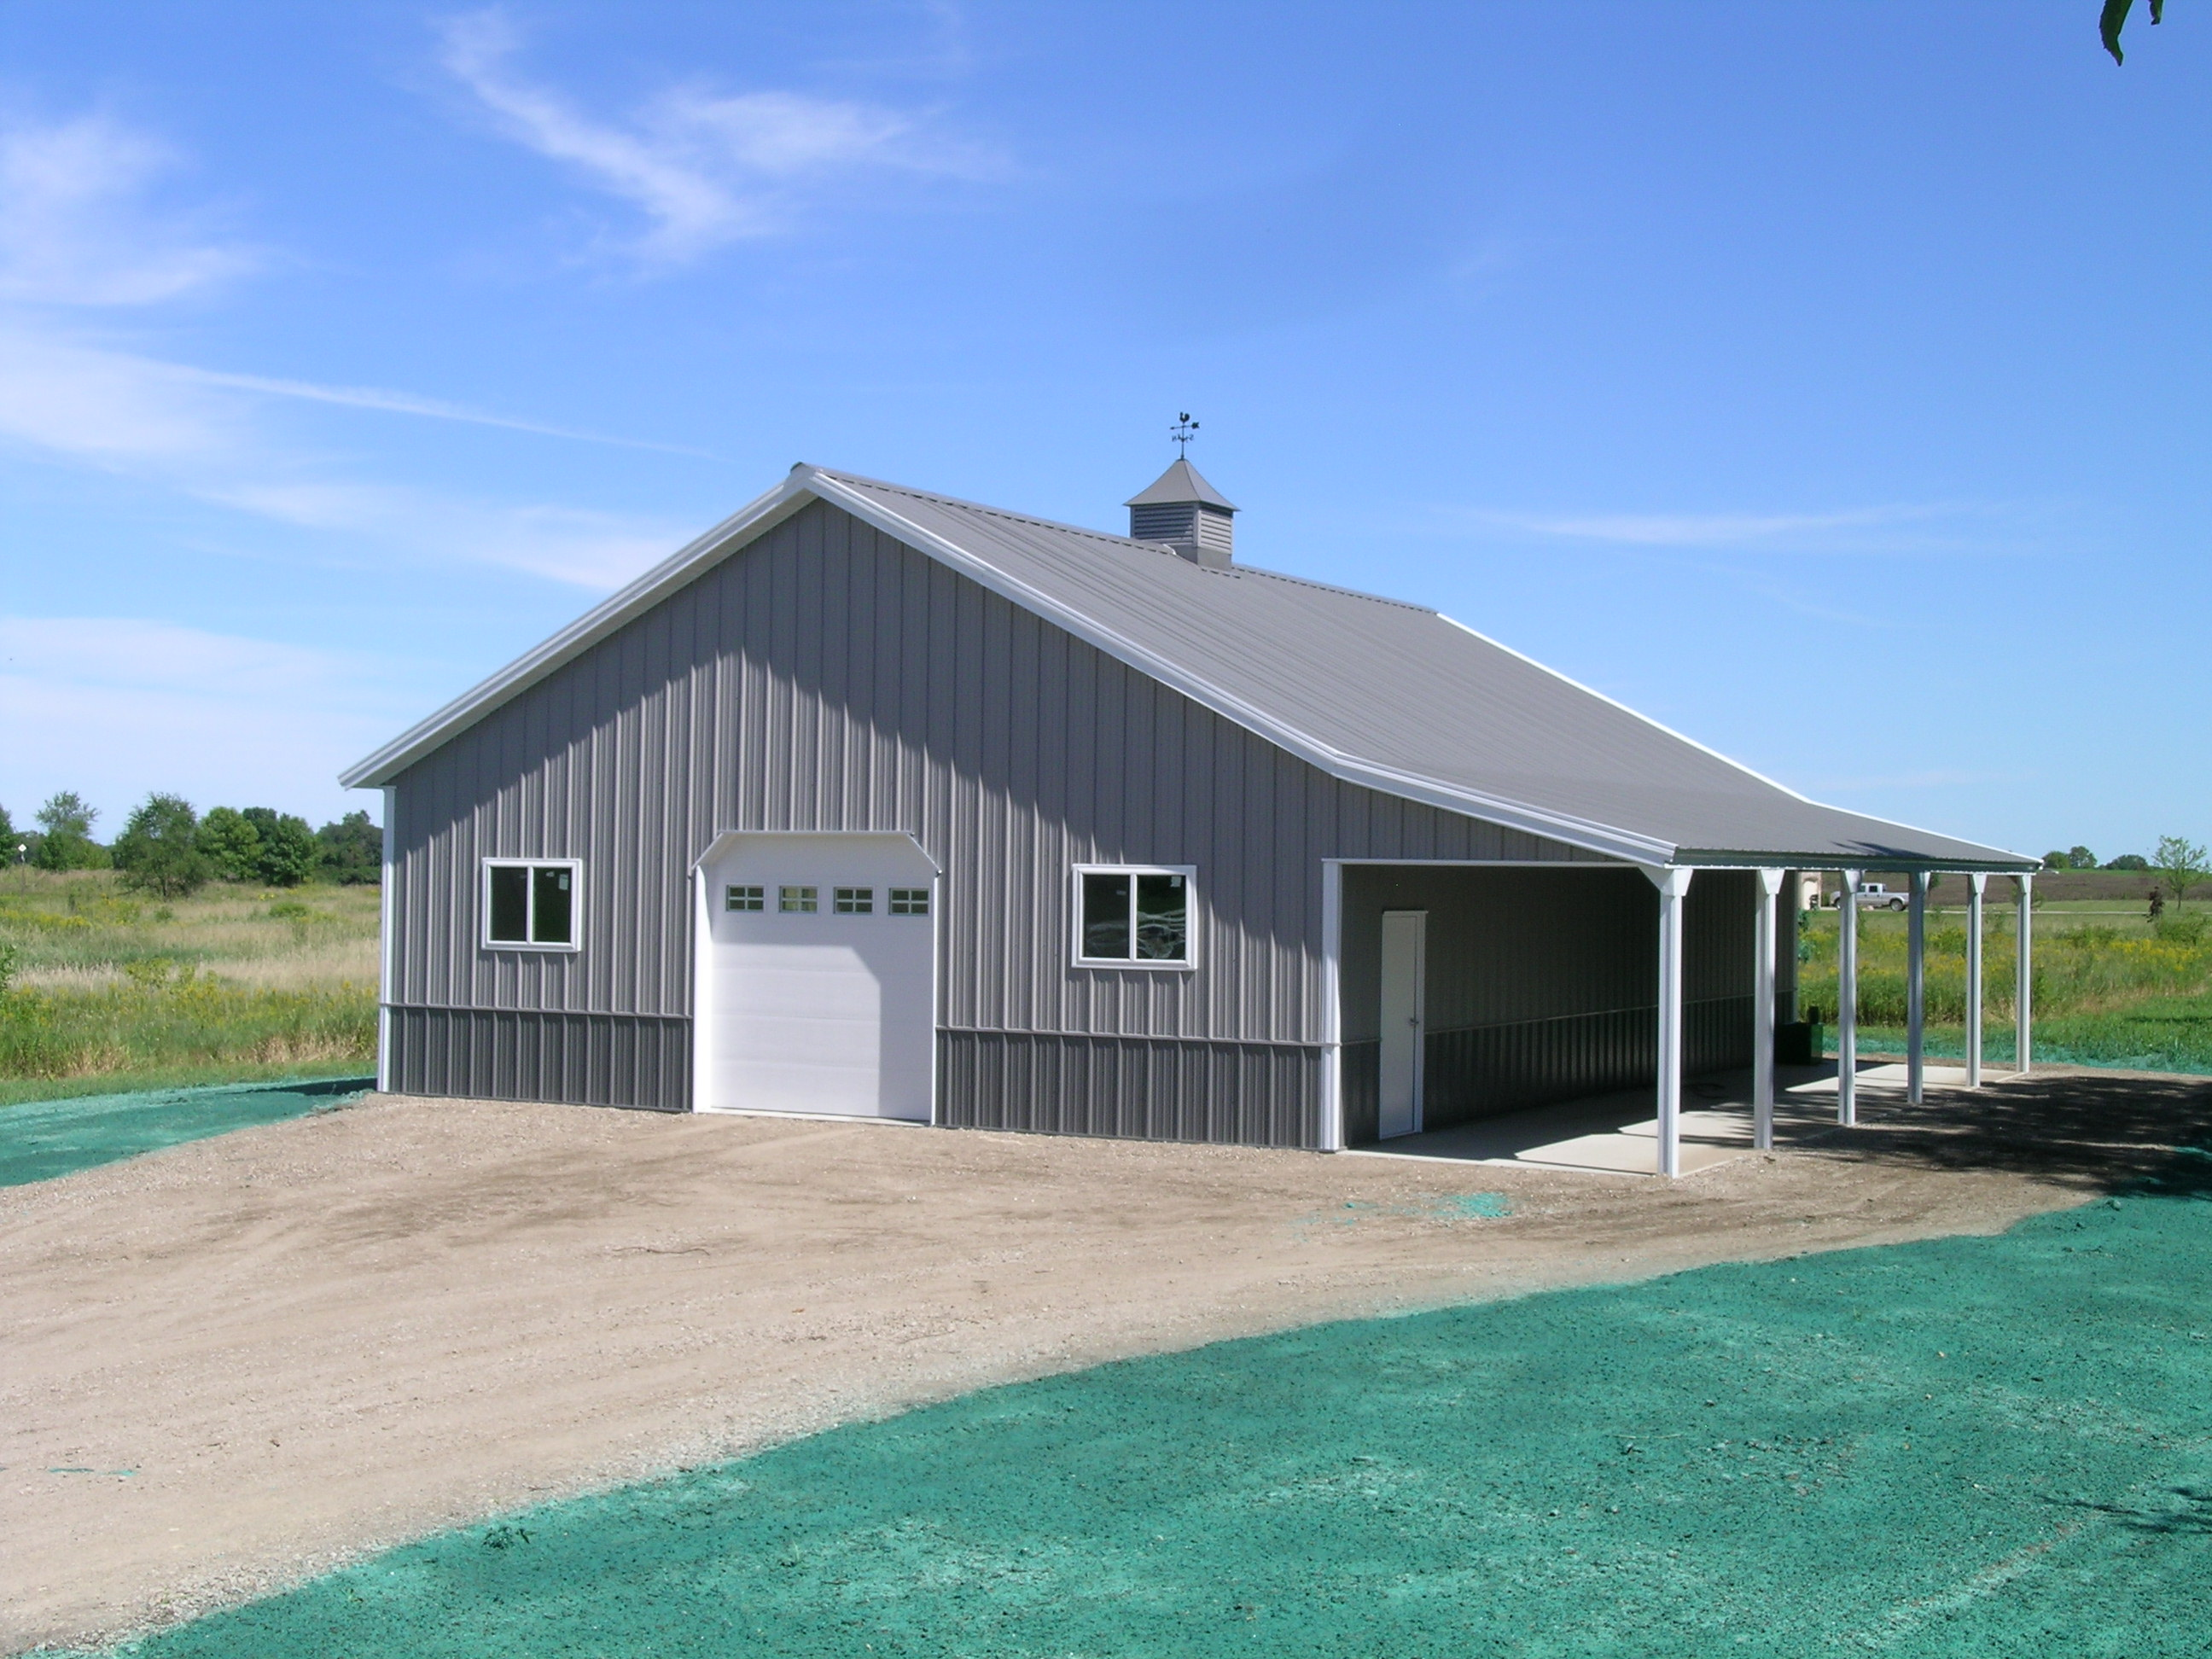 Corcoran mn garage hobby shop building lester for Pole barn specs